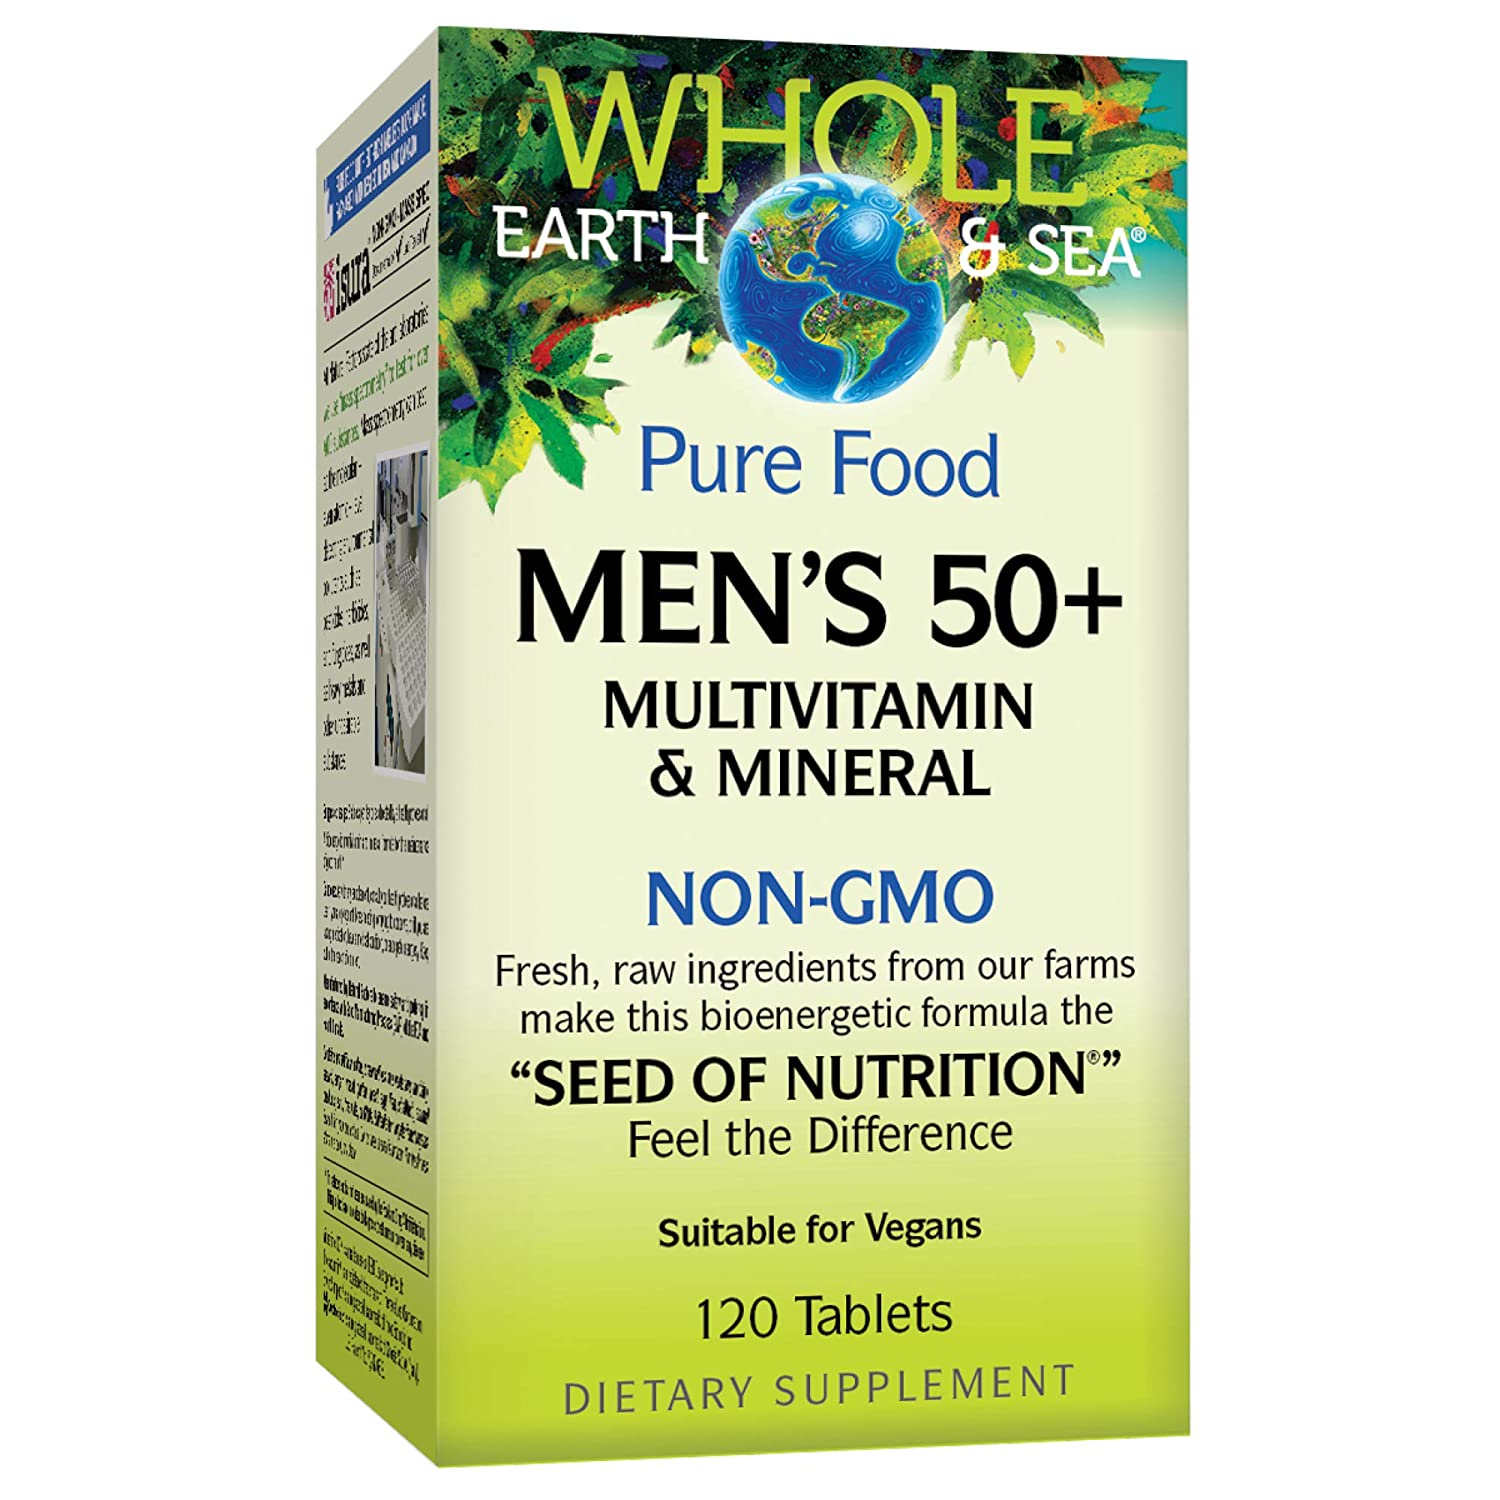 Whole Earth Sea from Natural Factors, Men s 50 Multivitamin Mineral, Whole Food Supplement, Vegan and Gluten Free, 120 Tablets 60 Servings